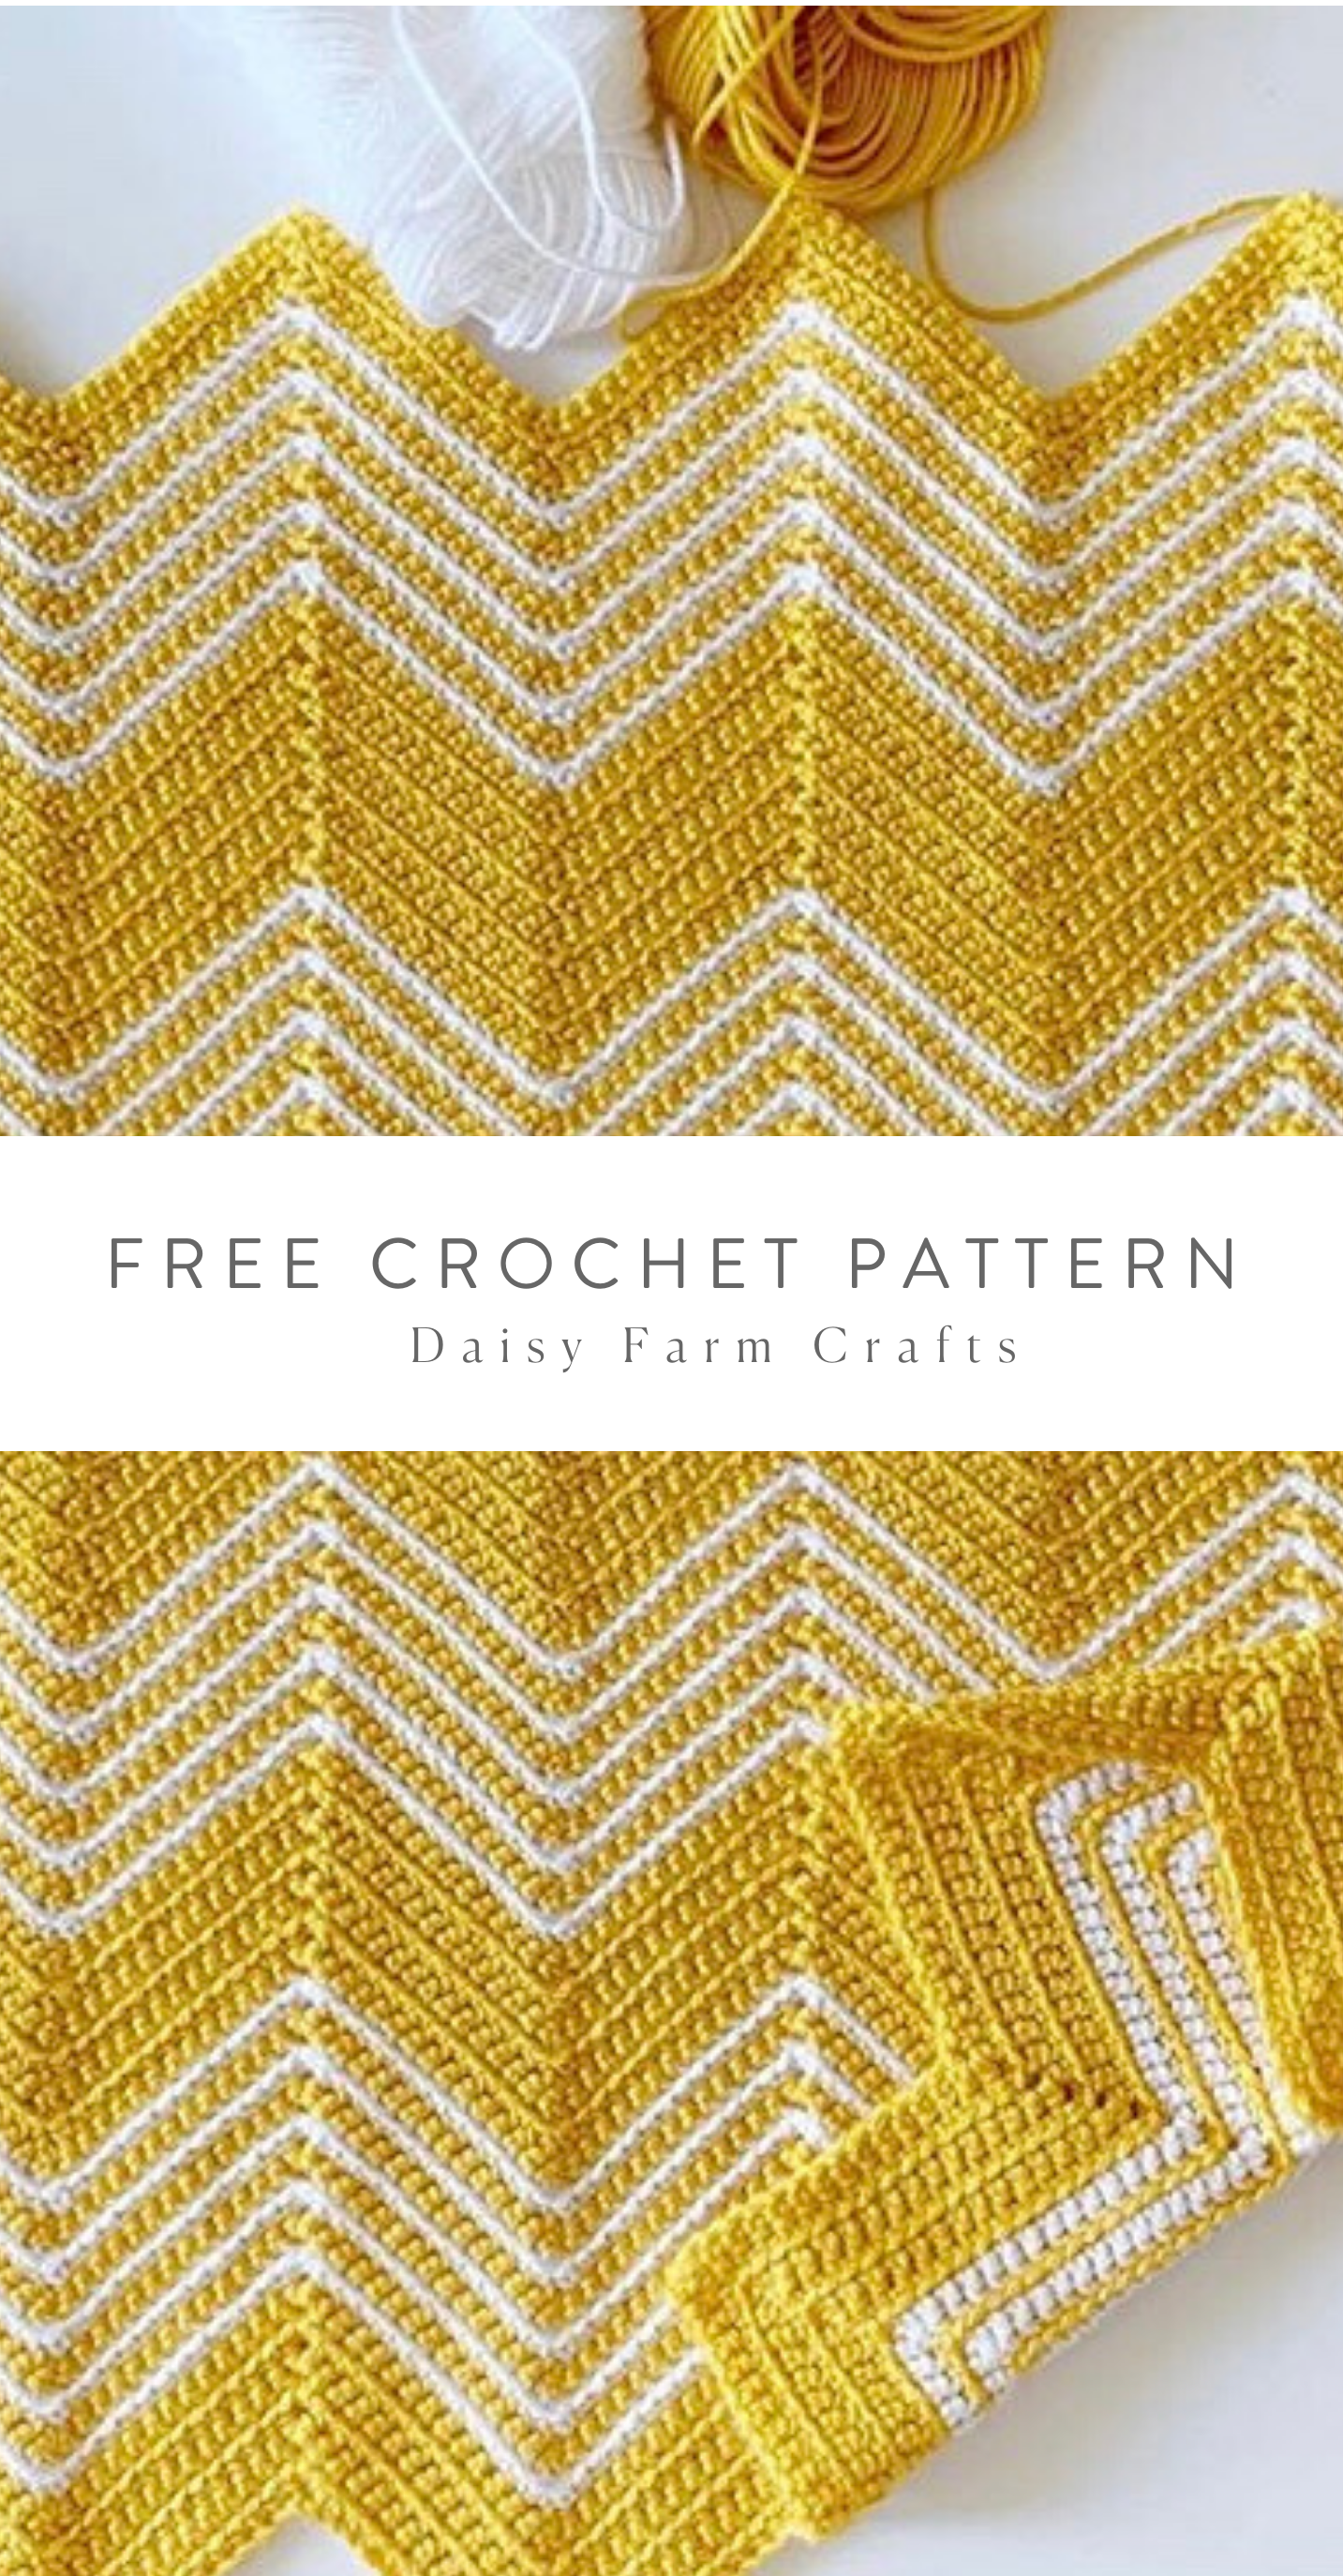 Free Pattern - Crochet Gold Chevron Blanket